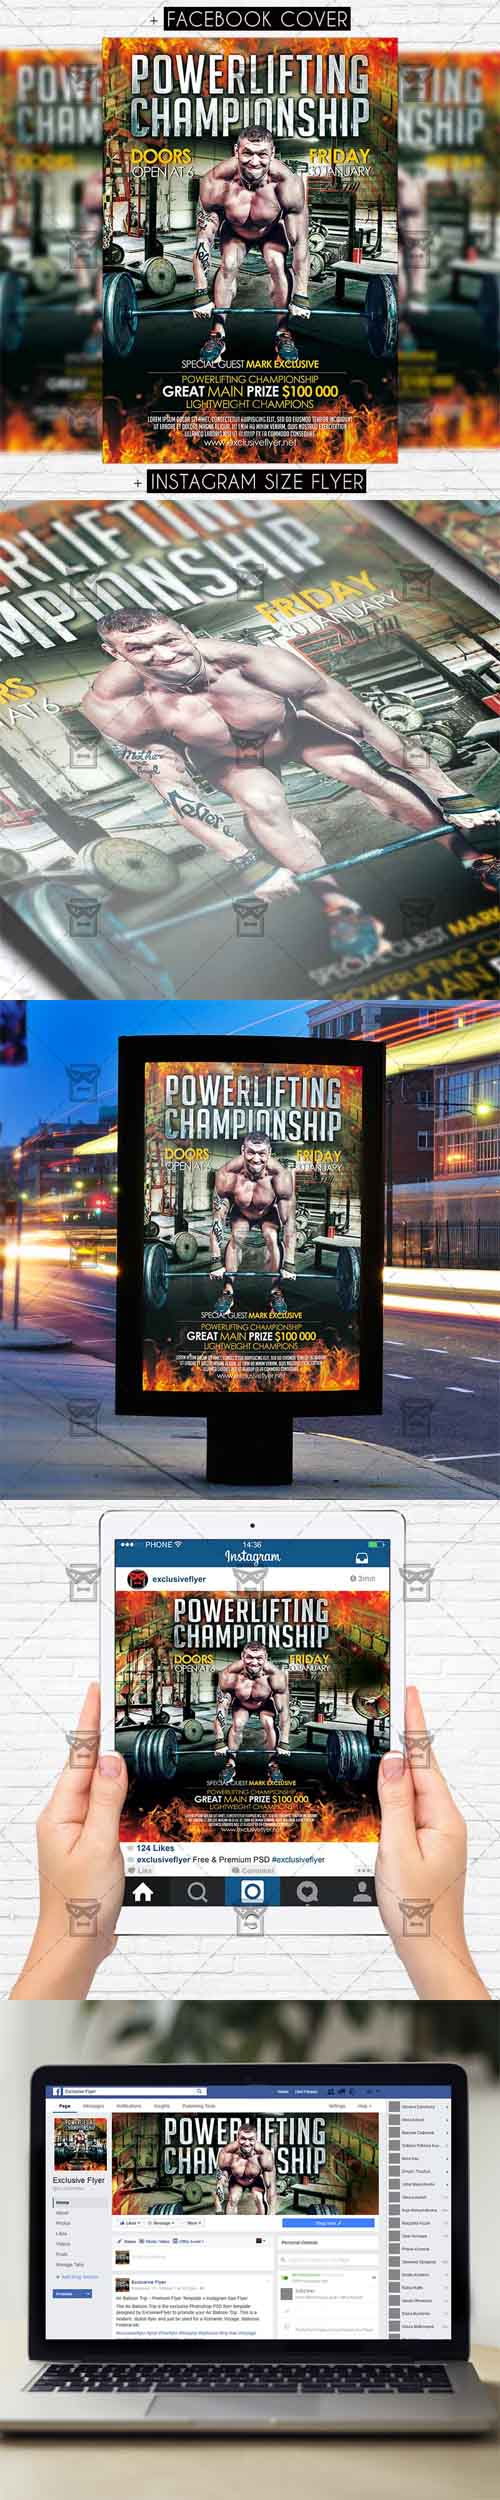 Flyer Template - Powerlifting